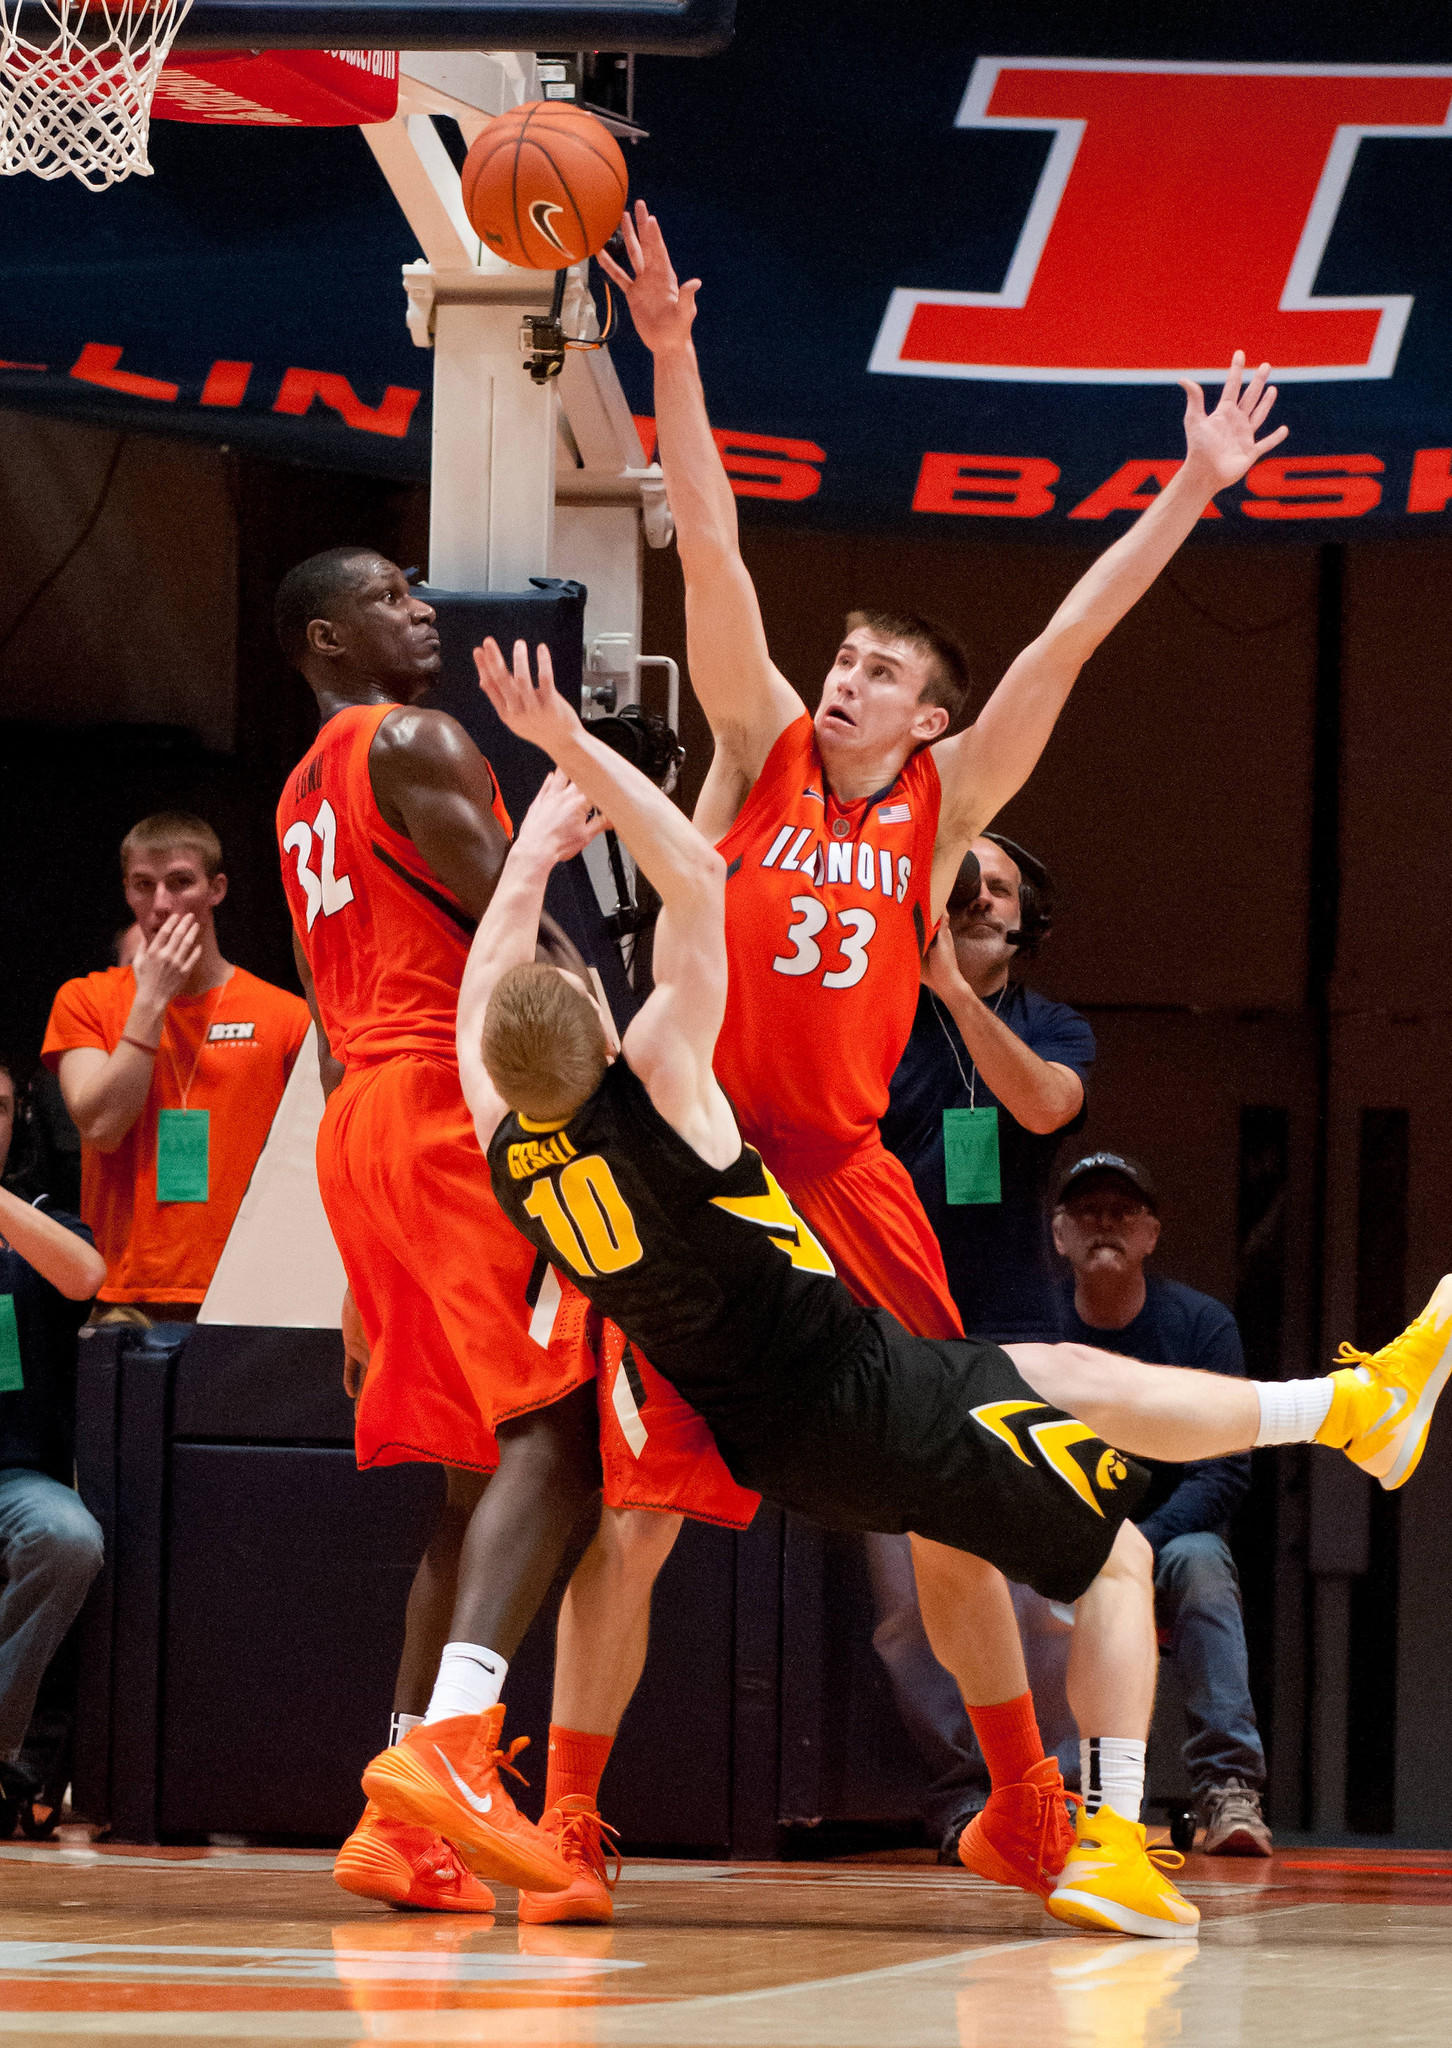 Iowa Hawkeyes guard Mike Gesell (10) shoots the ball while being defended by Illinois Fighting Illini forward/center Nnanna Egwu (32) and forward Jon Ekey (33) during the first half at State Farm Center.